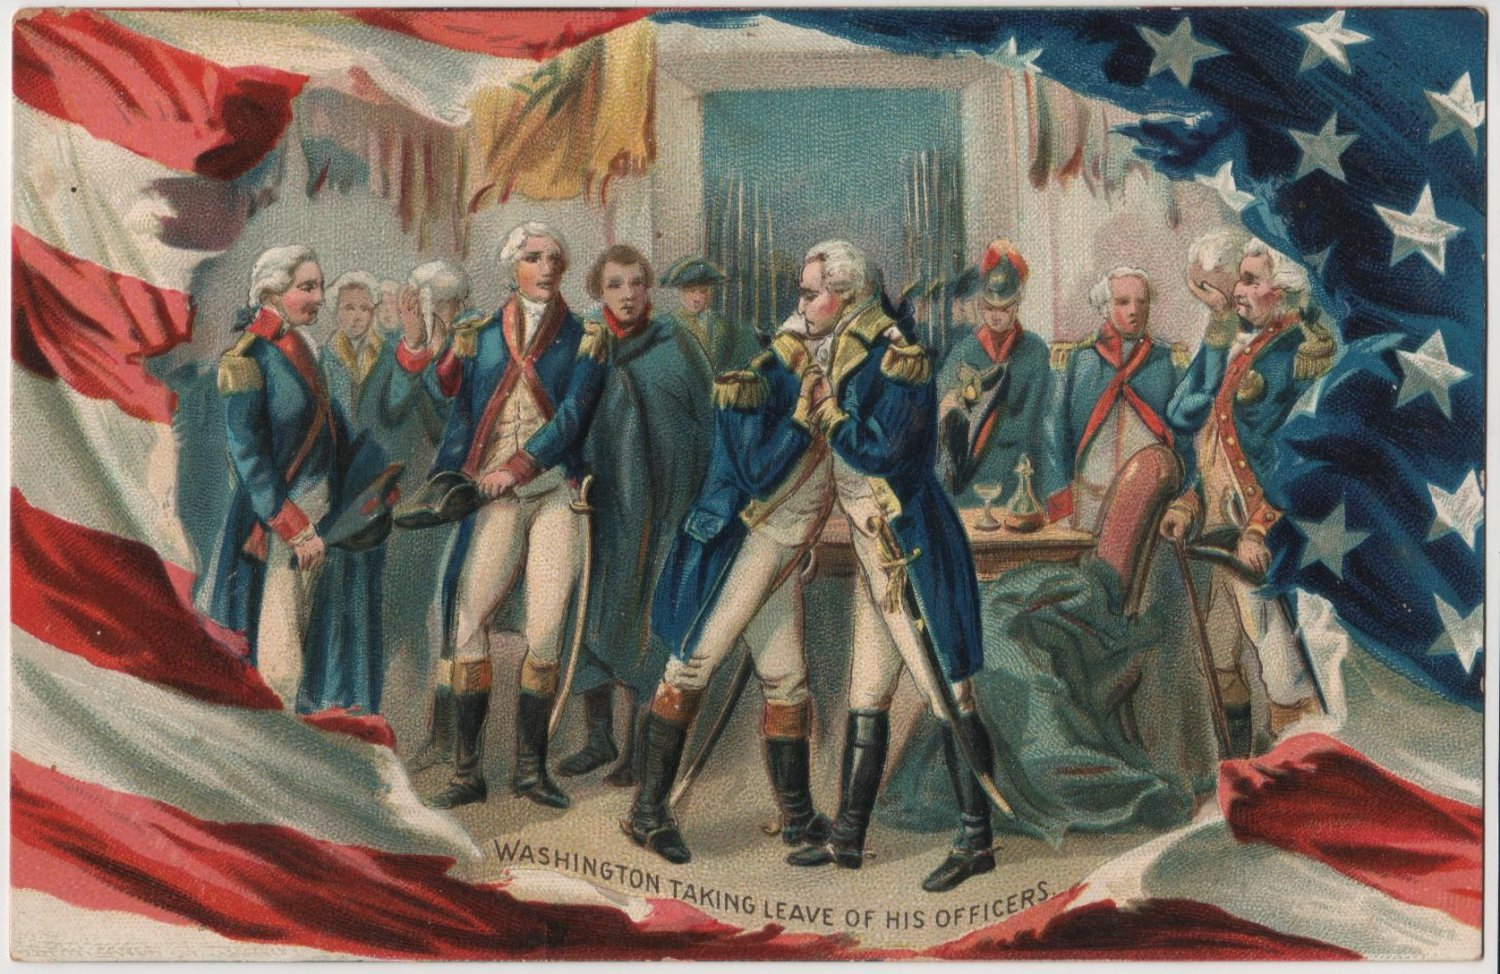 Geo. Washington Bday Card, Taking Leave of Officers c.1908